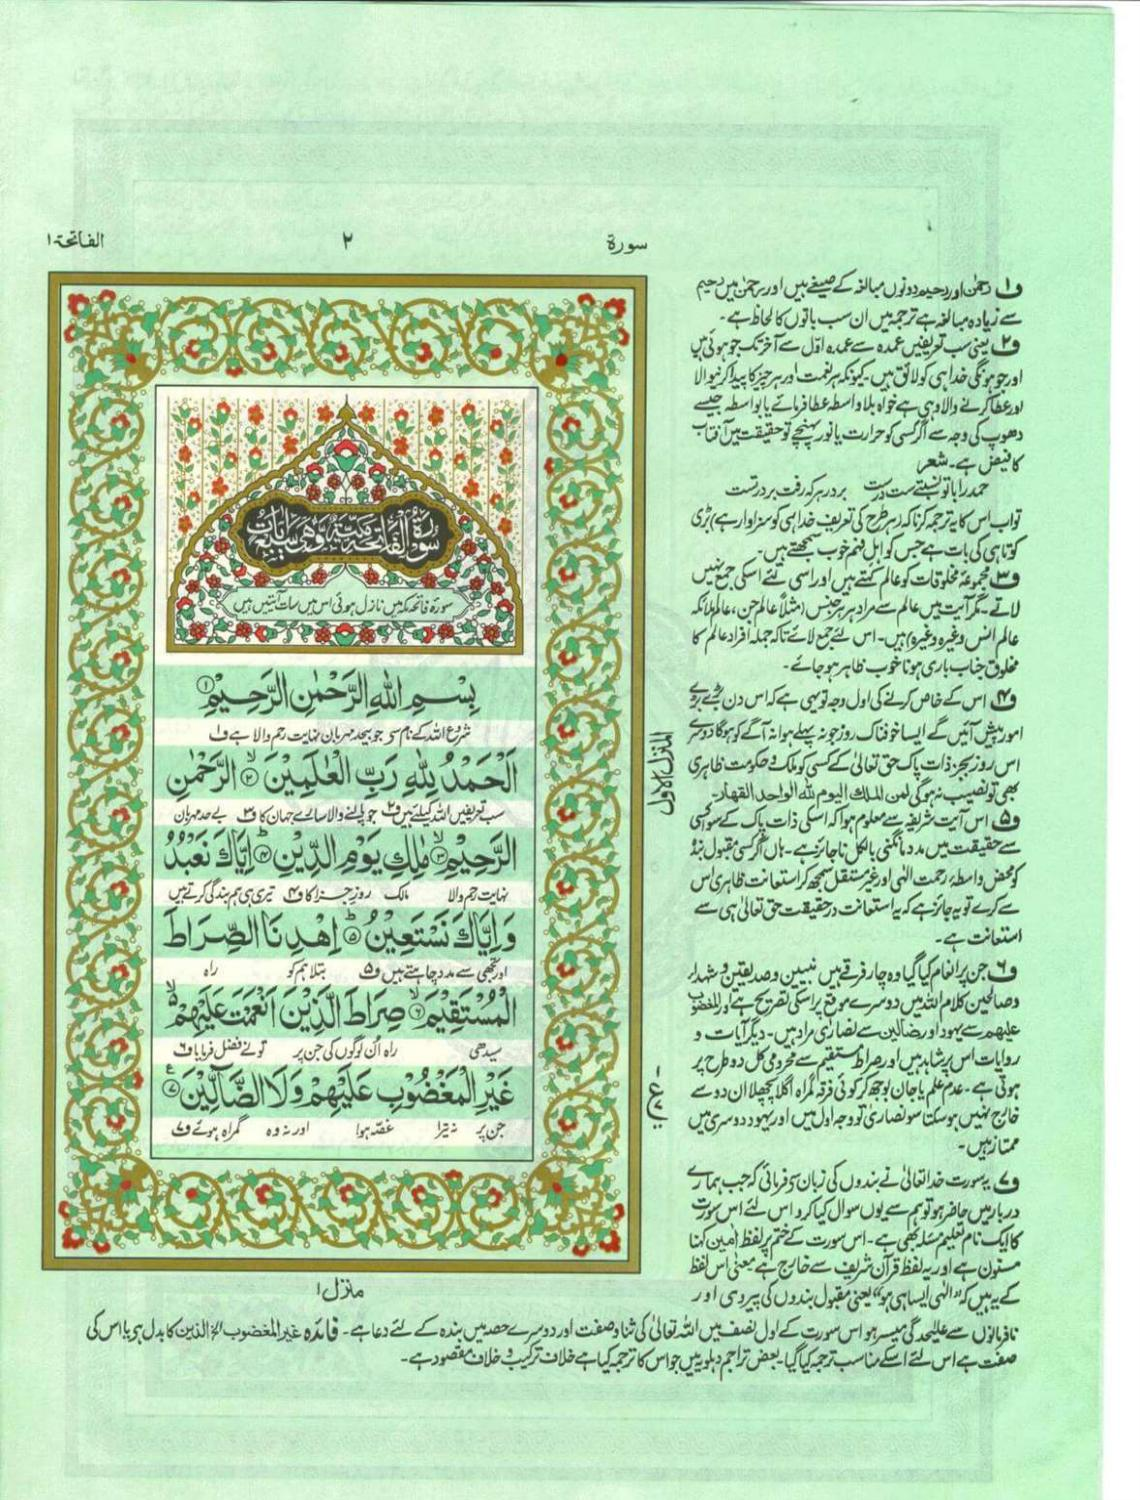 Para 1 - Quran with Urdu translation and tafseer by Islamic